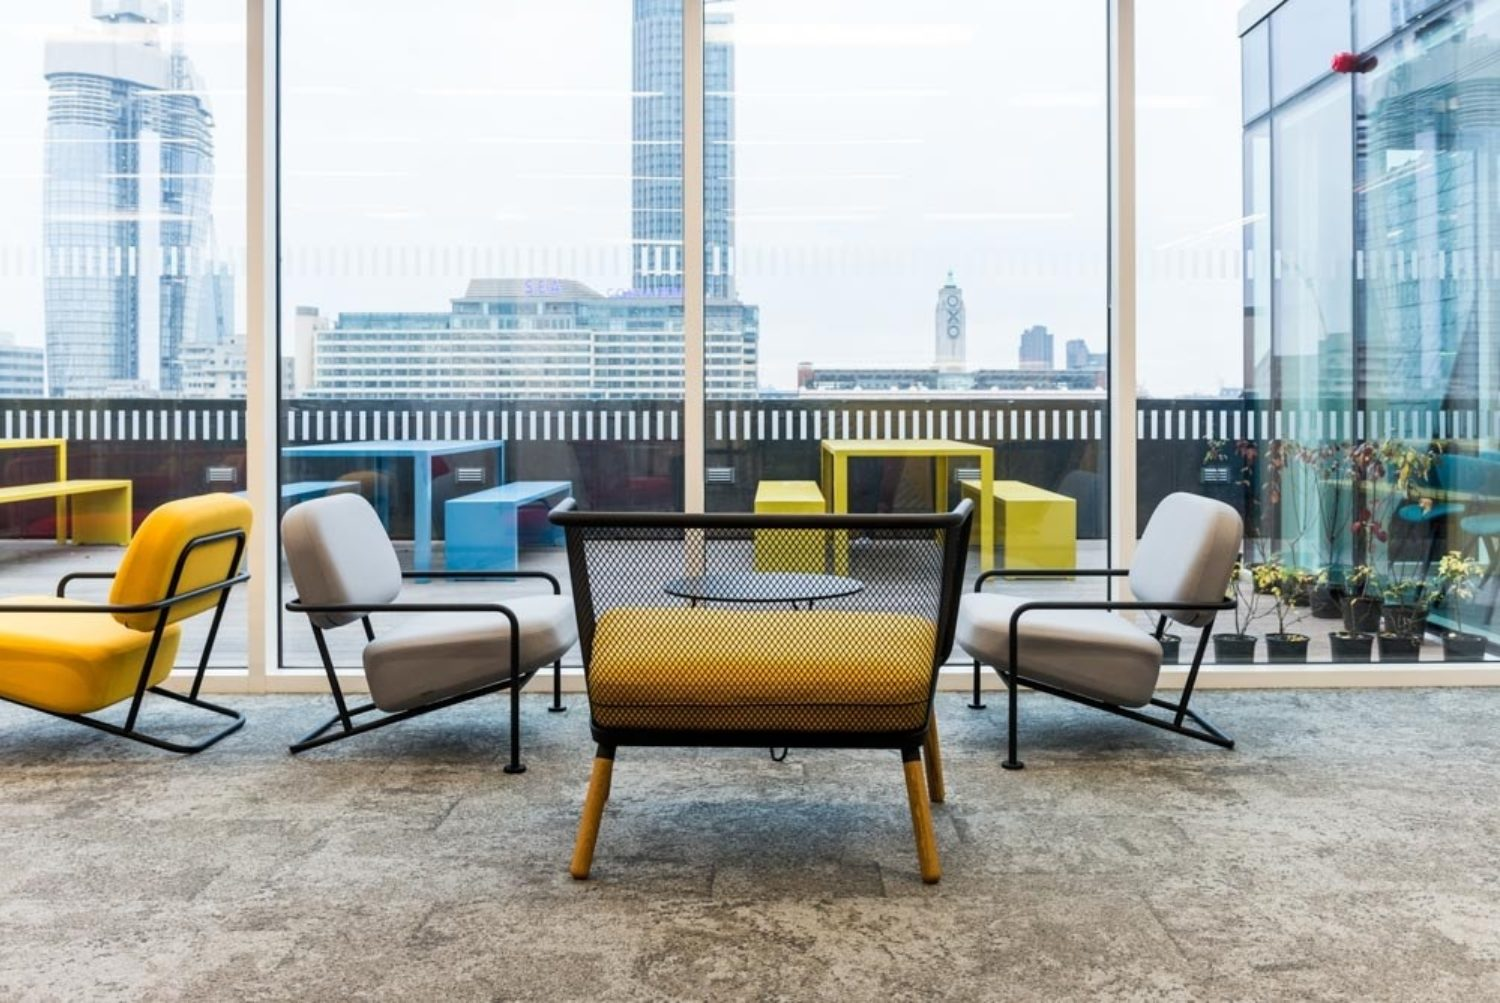 Breakout space in innovative office design